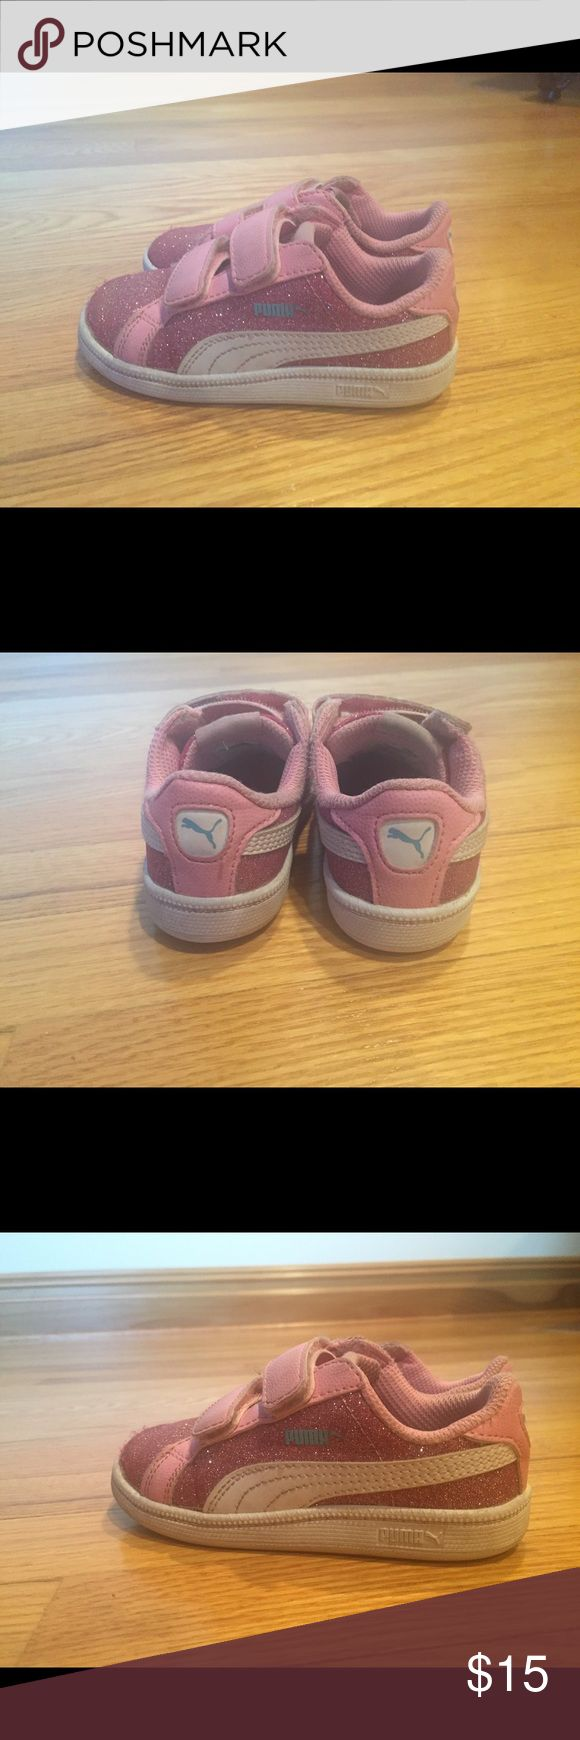 Puma pink sneakers Puma pink sneakers in good condition Puma Shoes Sneakers